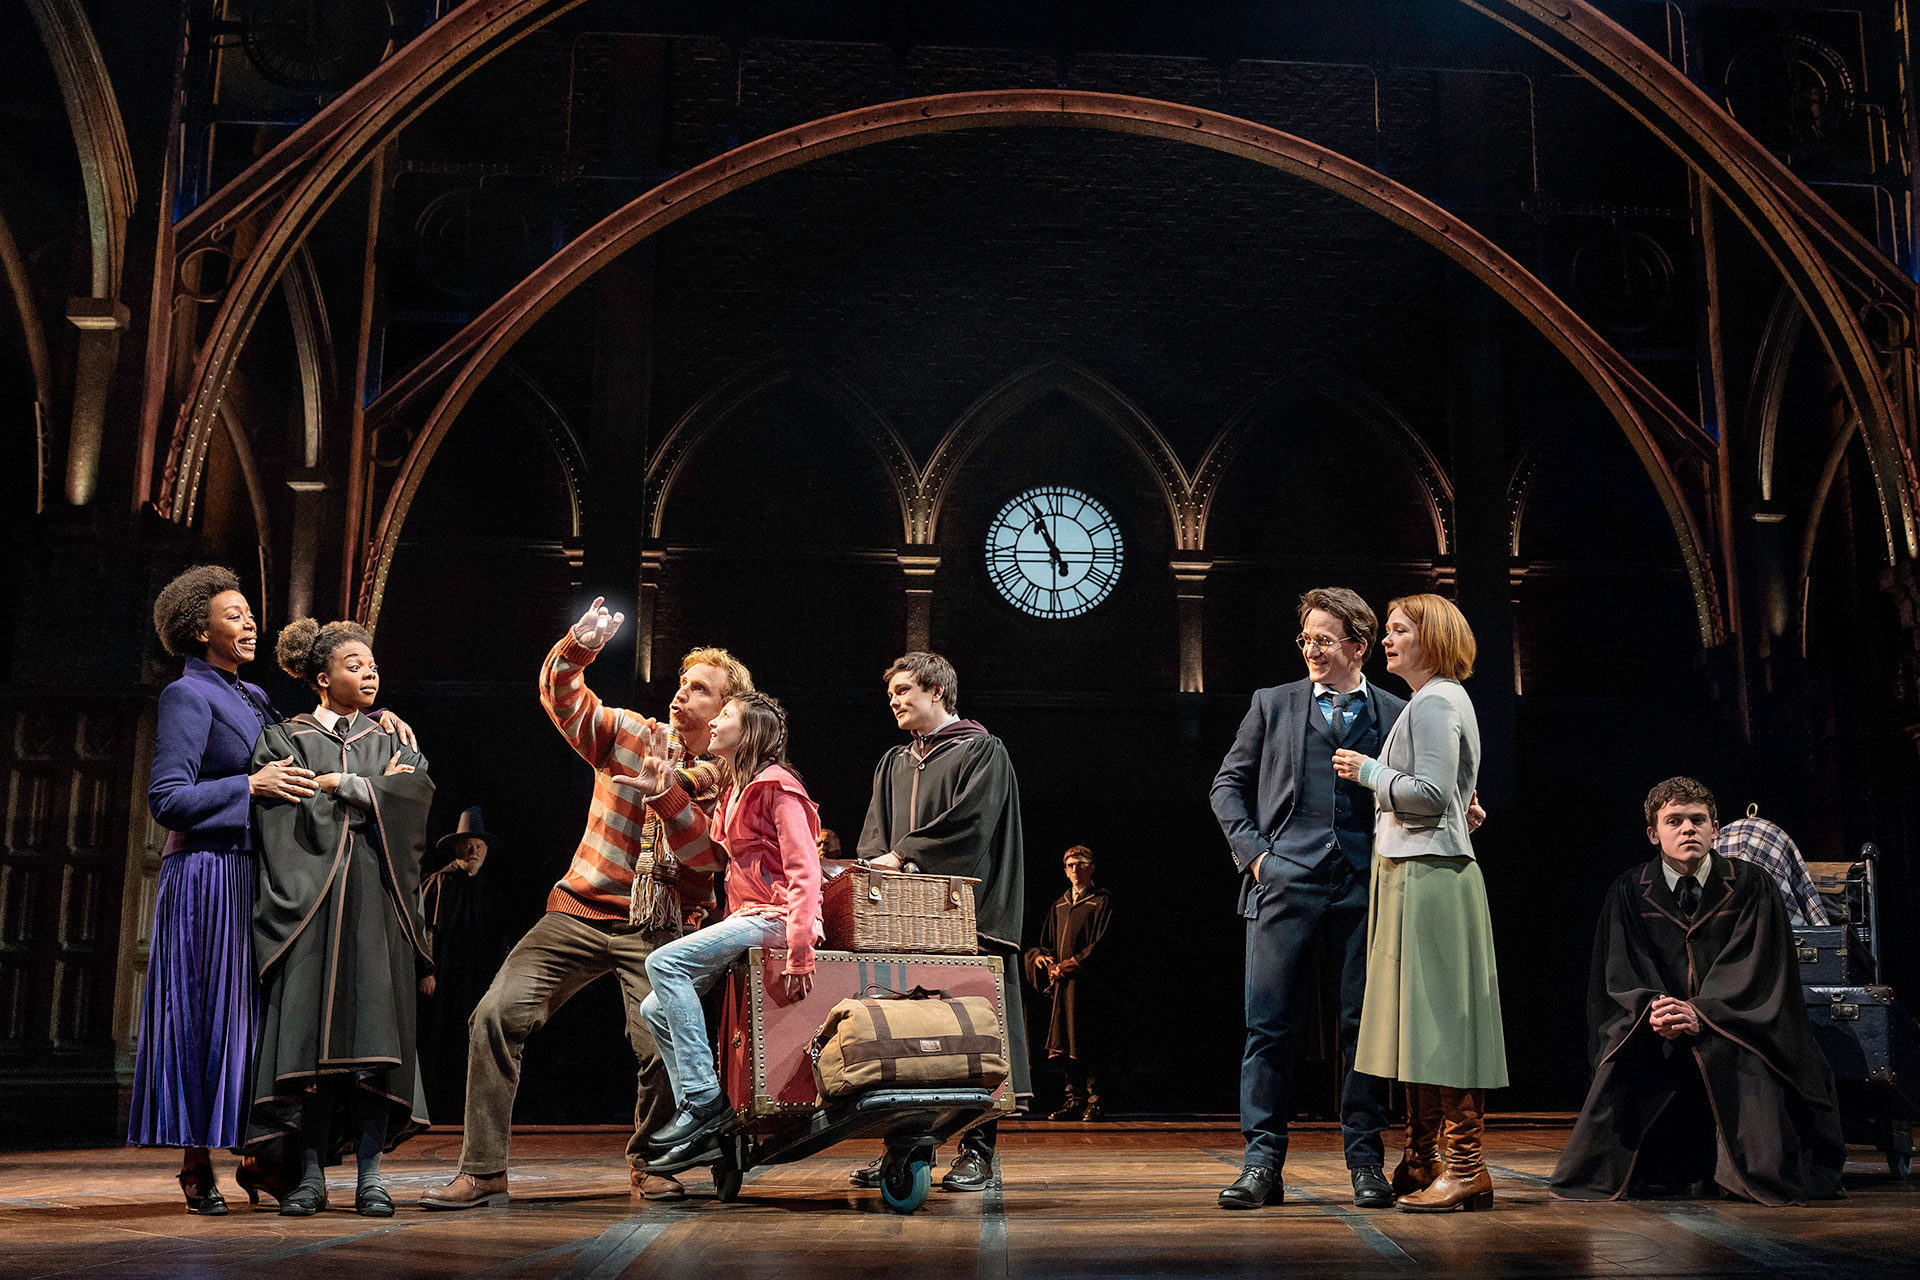 Noma Dumezweni, Susan Heyward, Paul Thornley, Olivia Bond, Ben Wheelwright, Jamie Parker, Poppy Miller, and Sam Clemmett in Harry Potter and the Cursed Child: Parts 1 and 2; Courtesy of Manuel Harlan